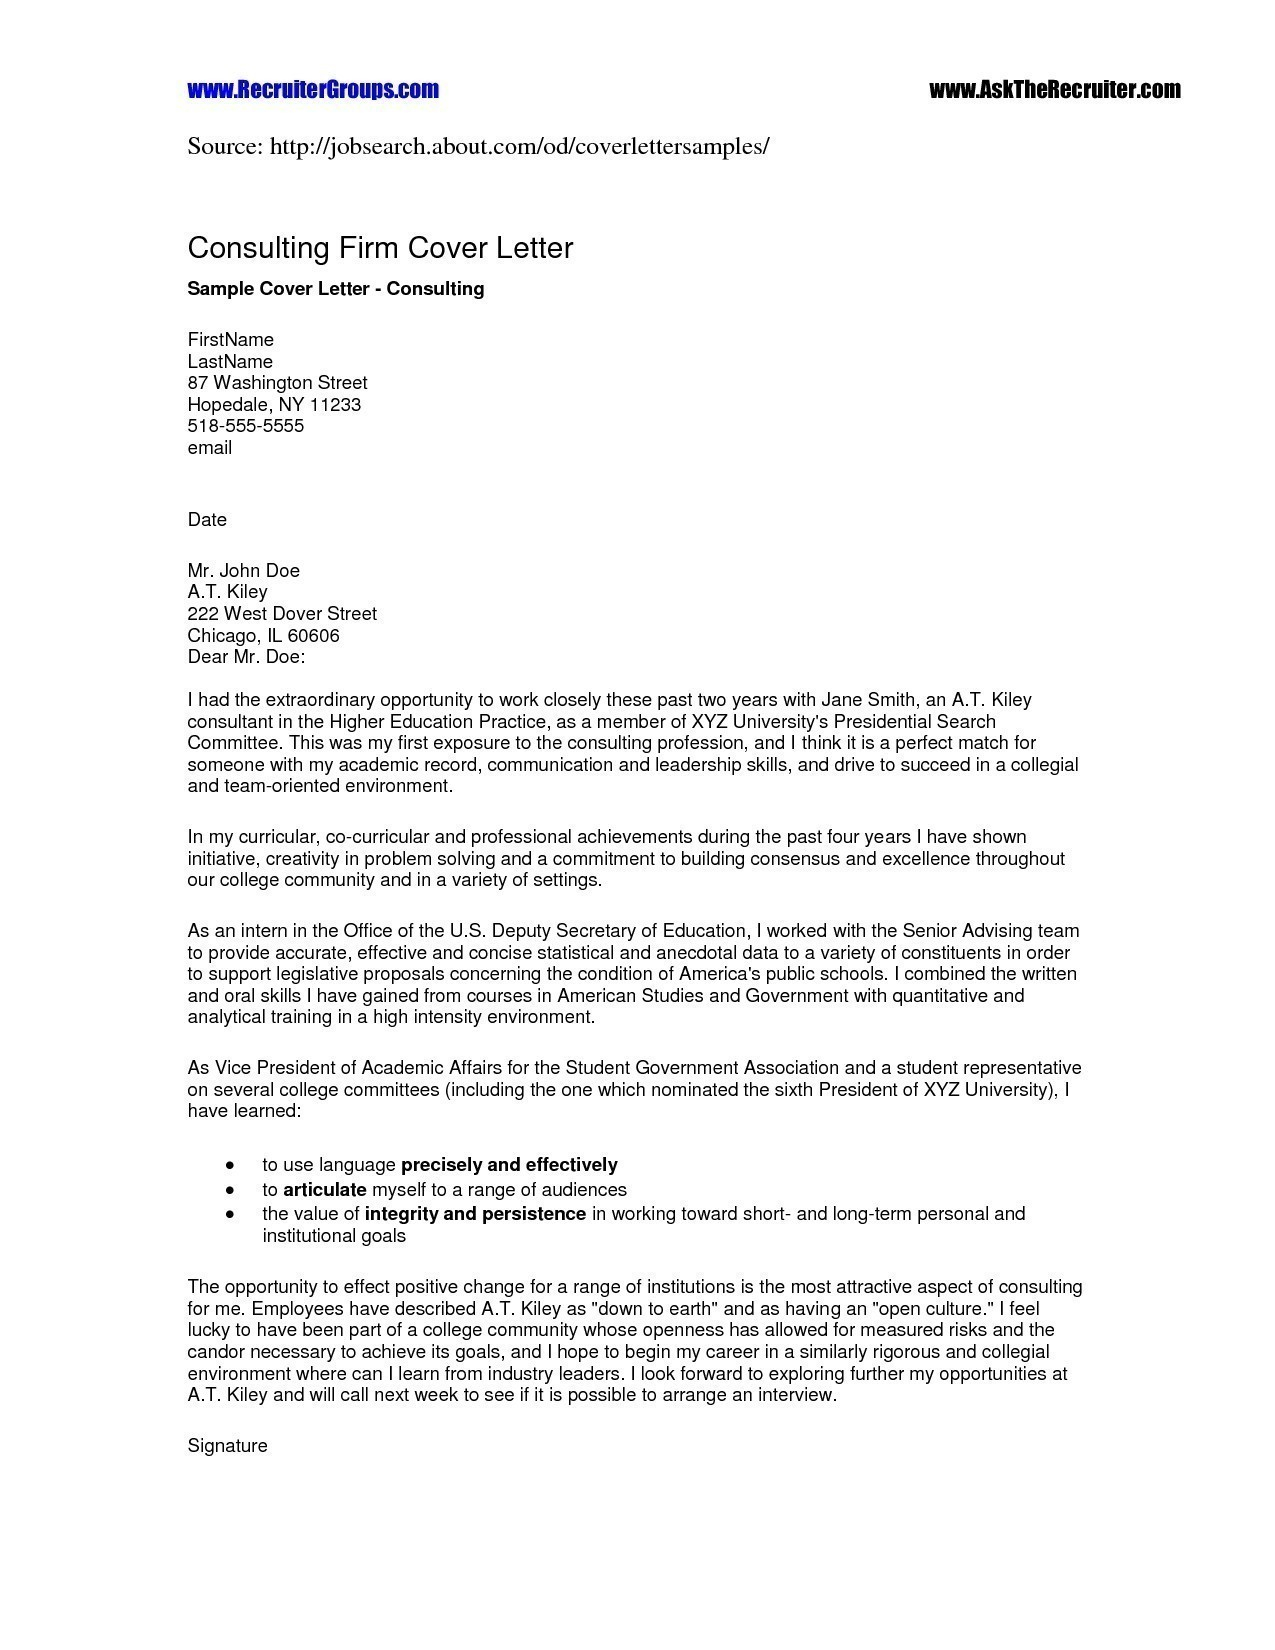 job offer proposal letter template how to write job fer letter fresh job fer letter